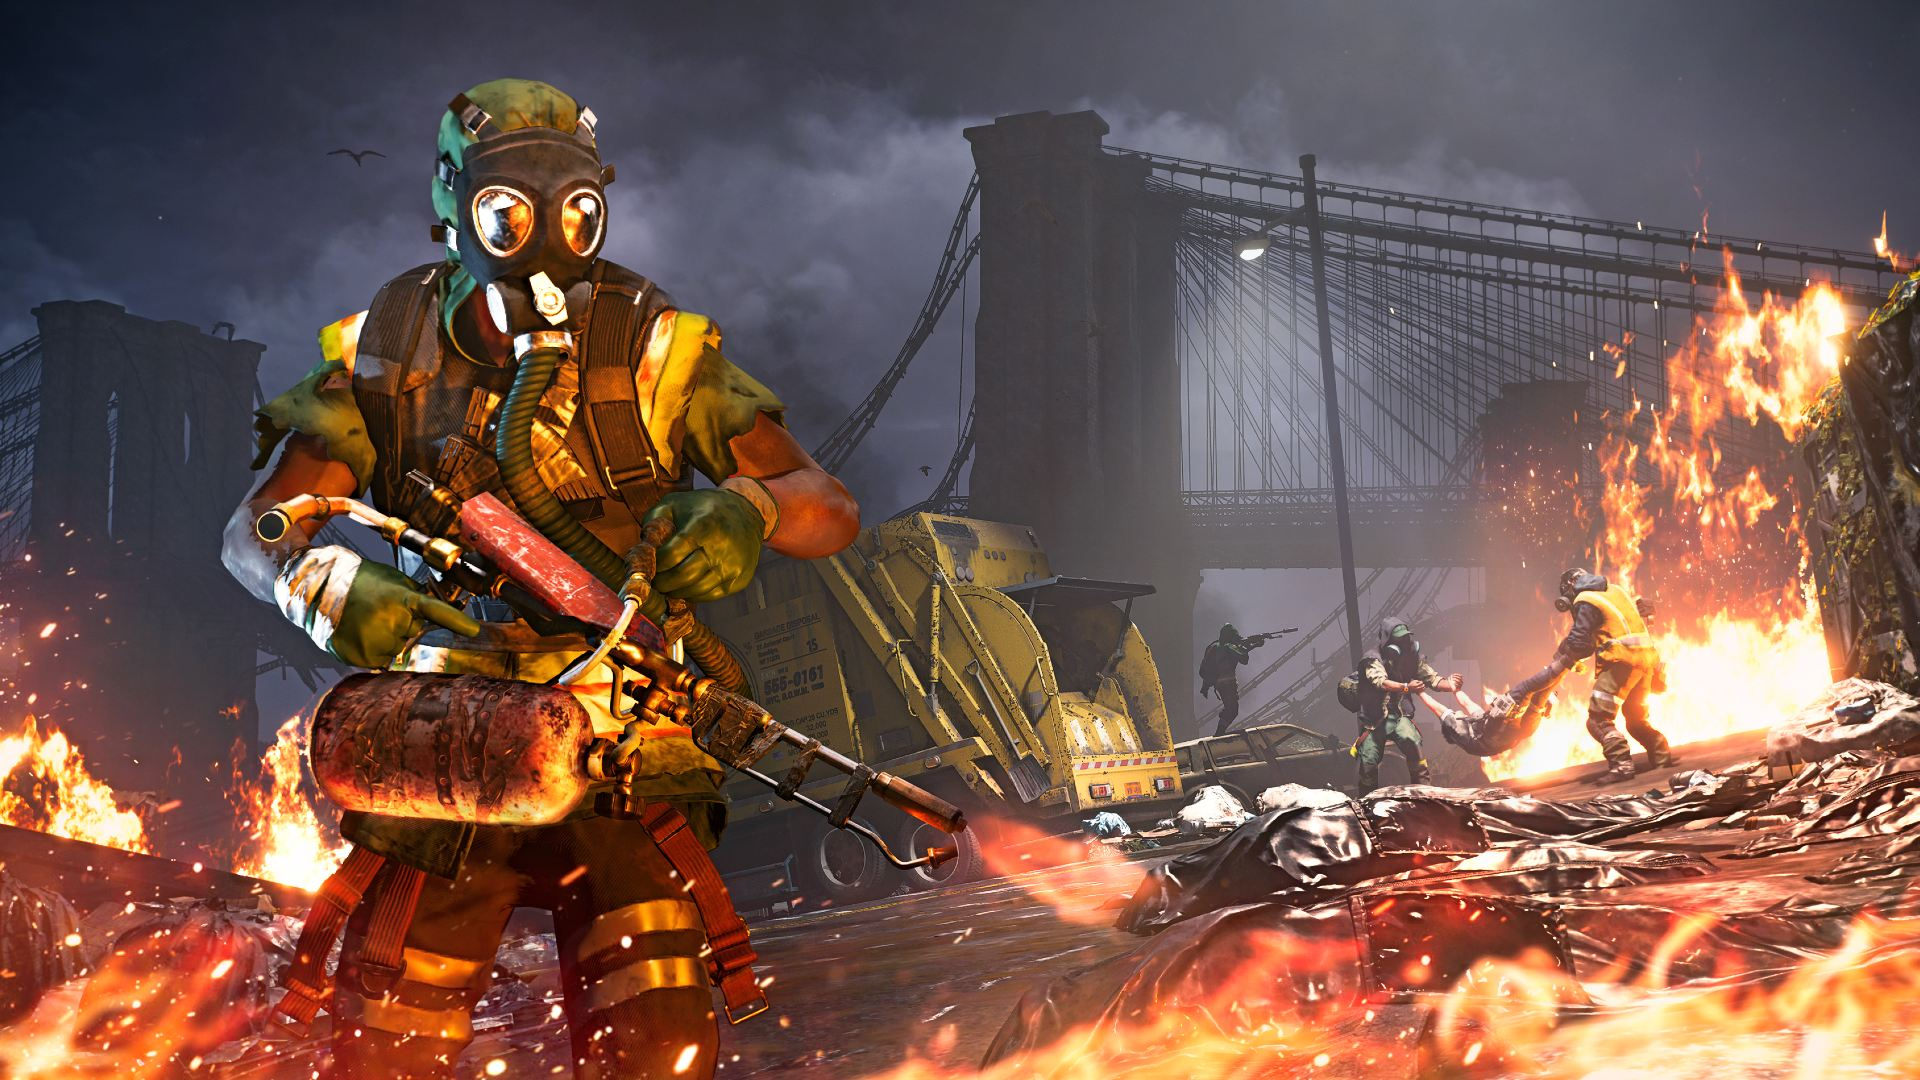 The Division 2 expansion 'Warlords of New York' announced